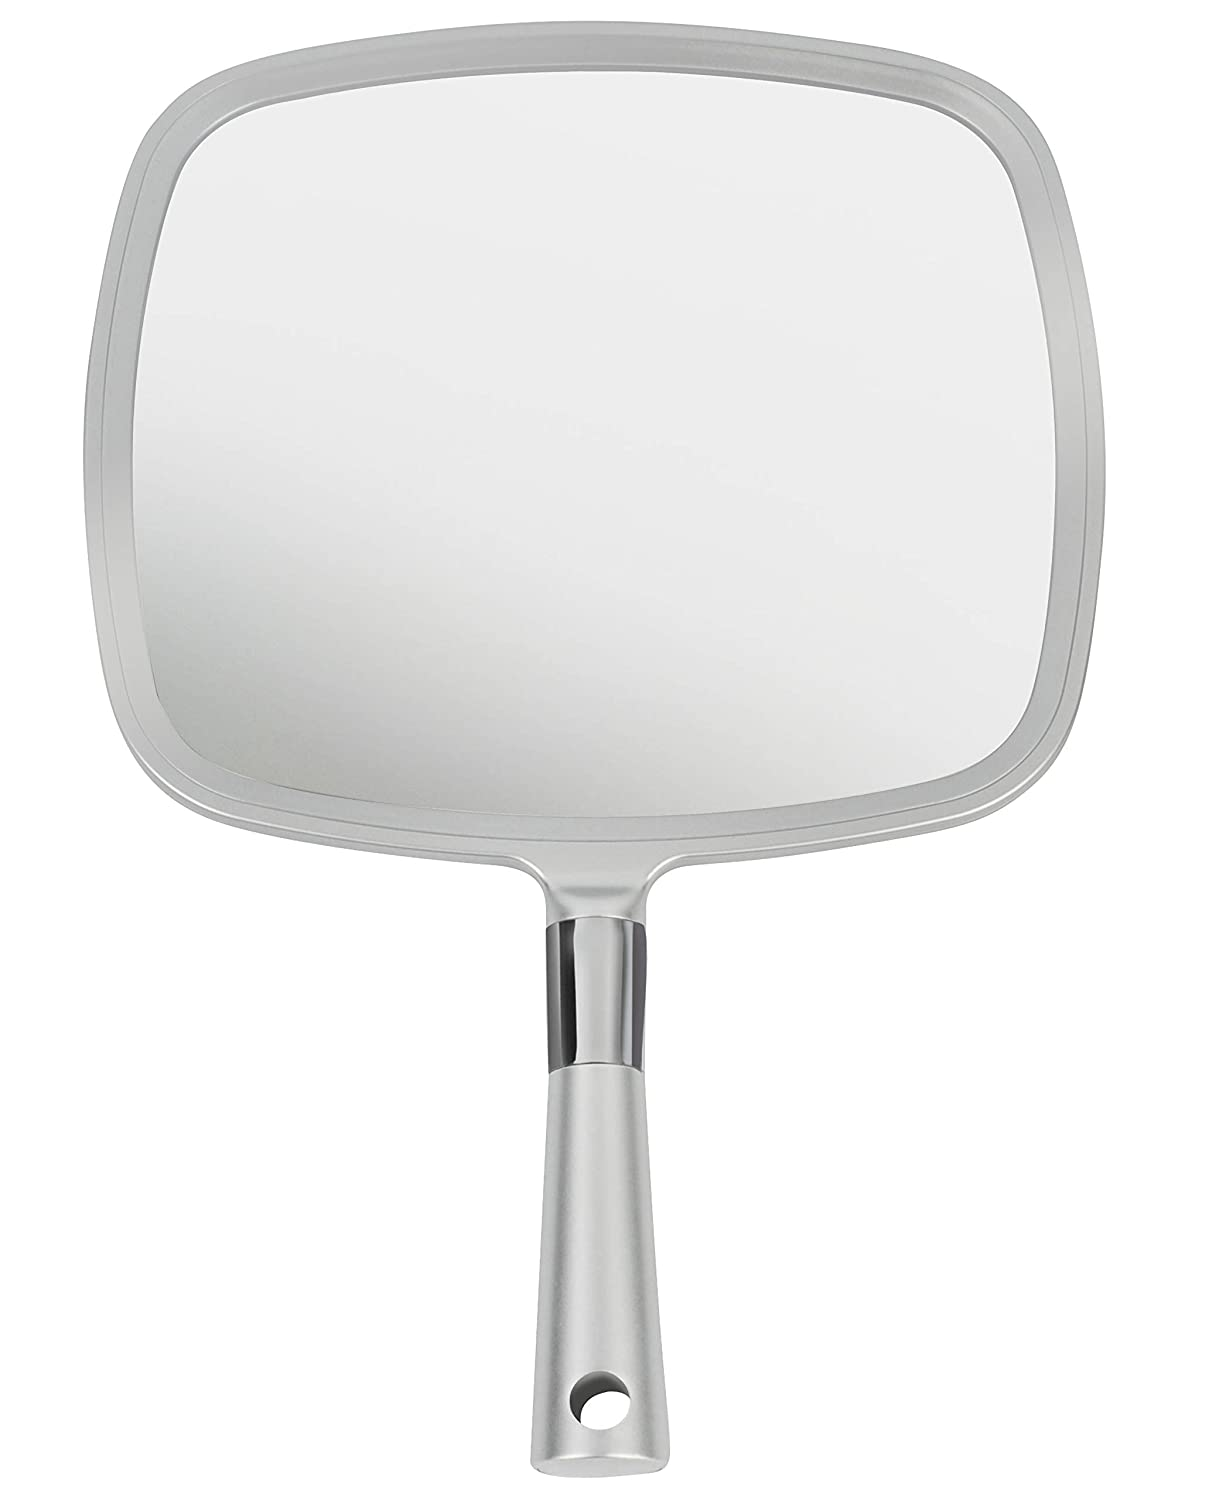 Mirrorvana Large & Comfy Hand Held Mirror with Handle - Silver Salon Model (1-Pack)